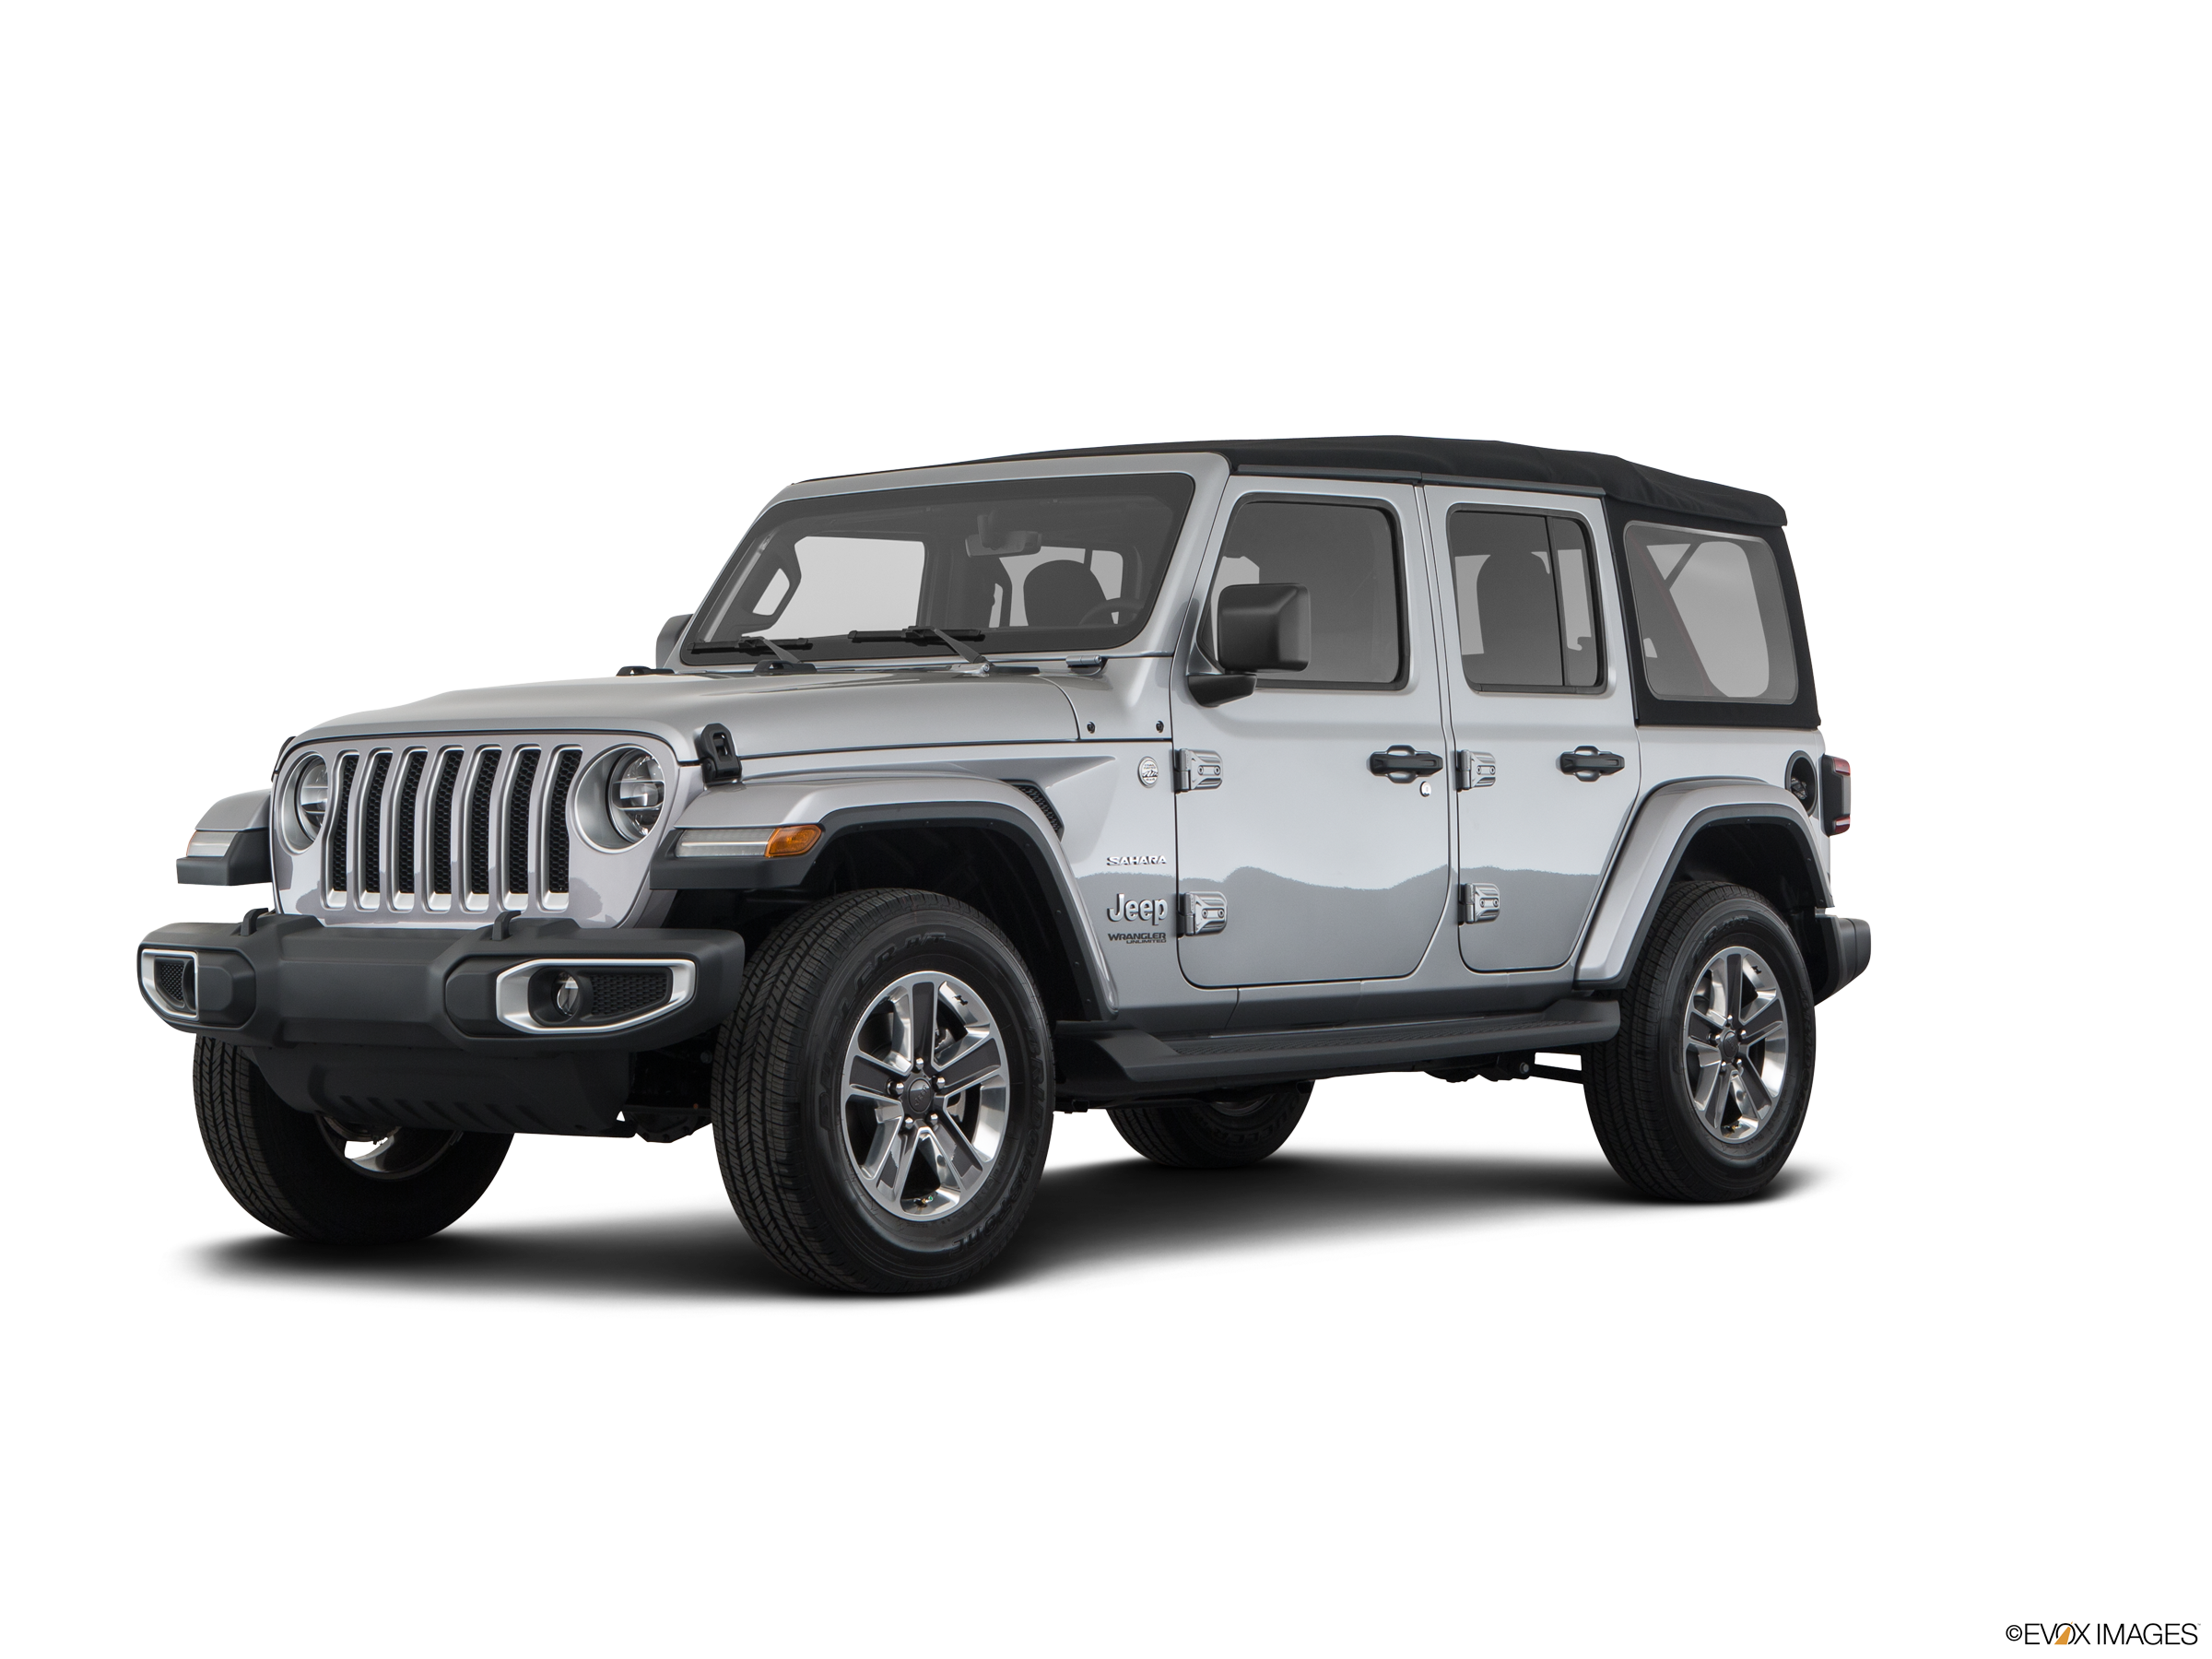 New 2020 Jeep Wrangler Unlimited Sahara Prices Kelley Blue Book